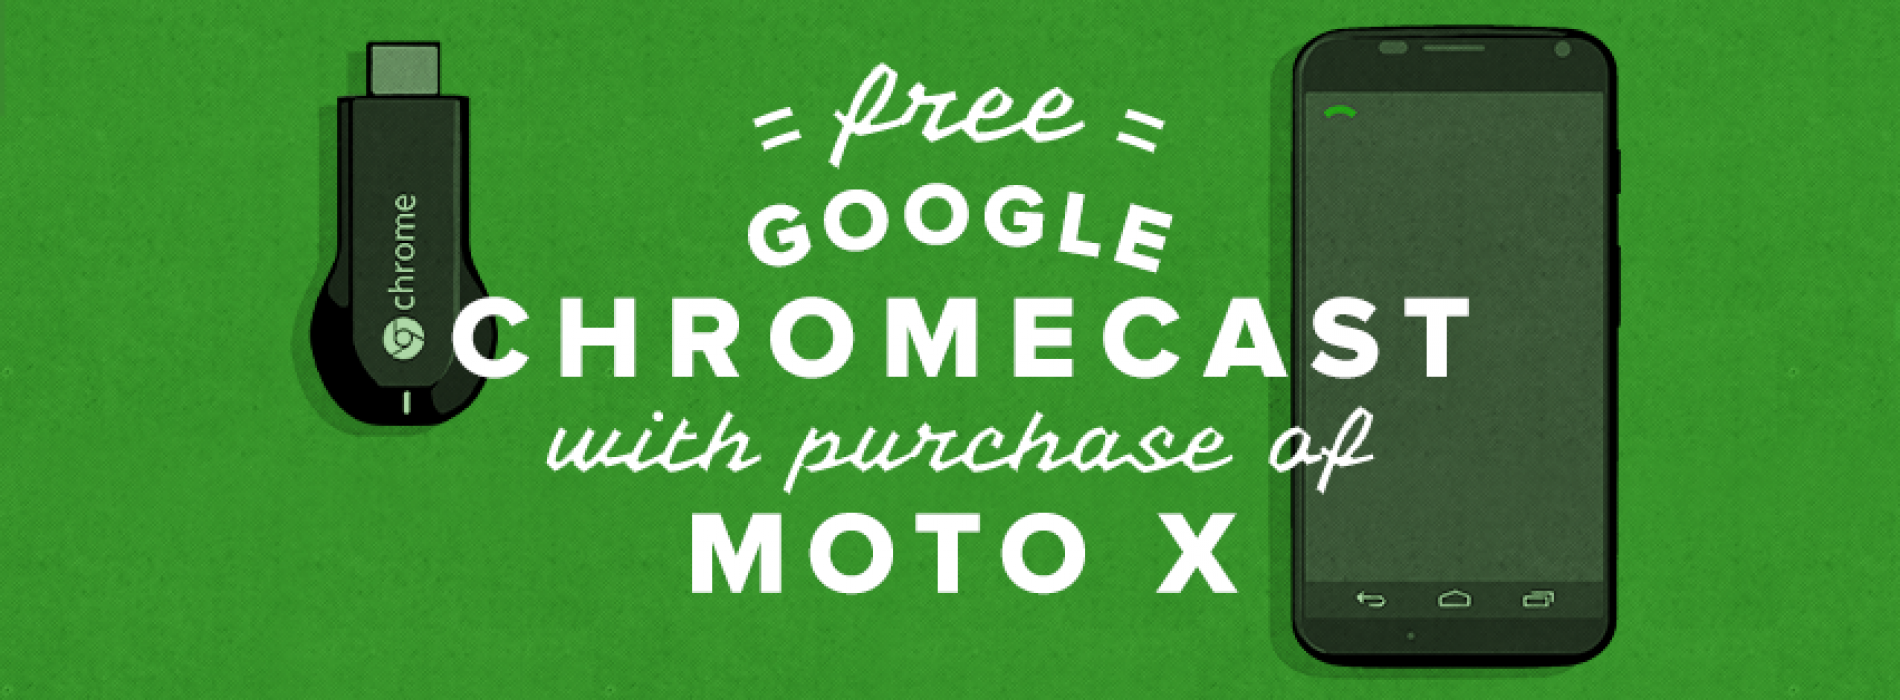 Republic Wireless offering free Chromecast with purchase of Moto X